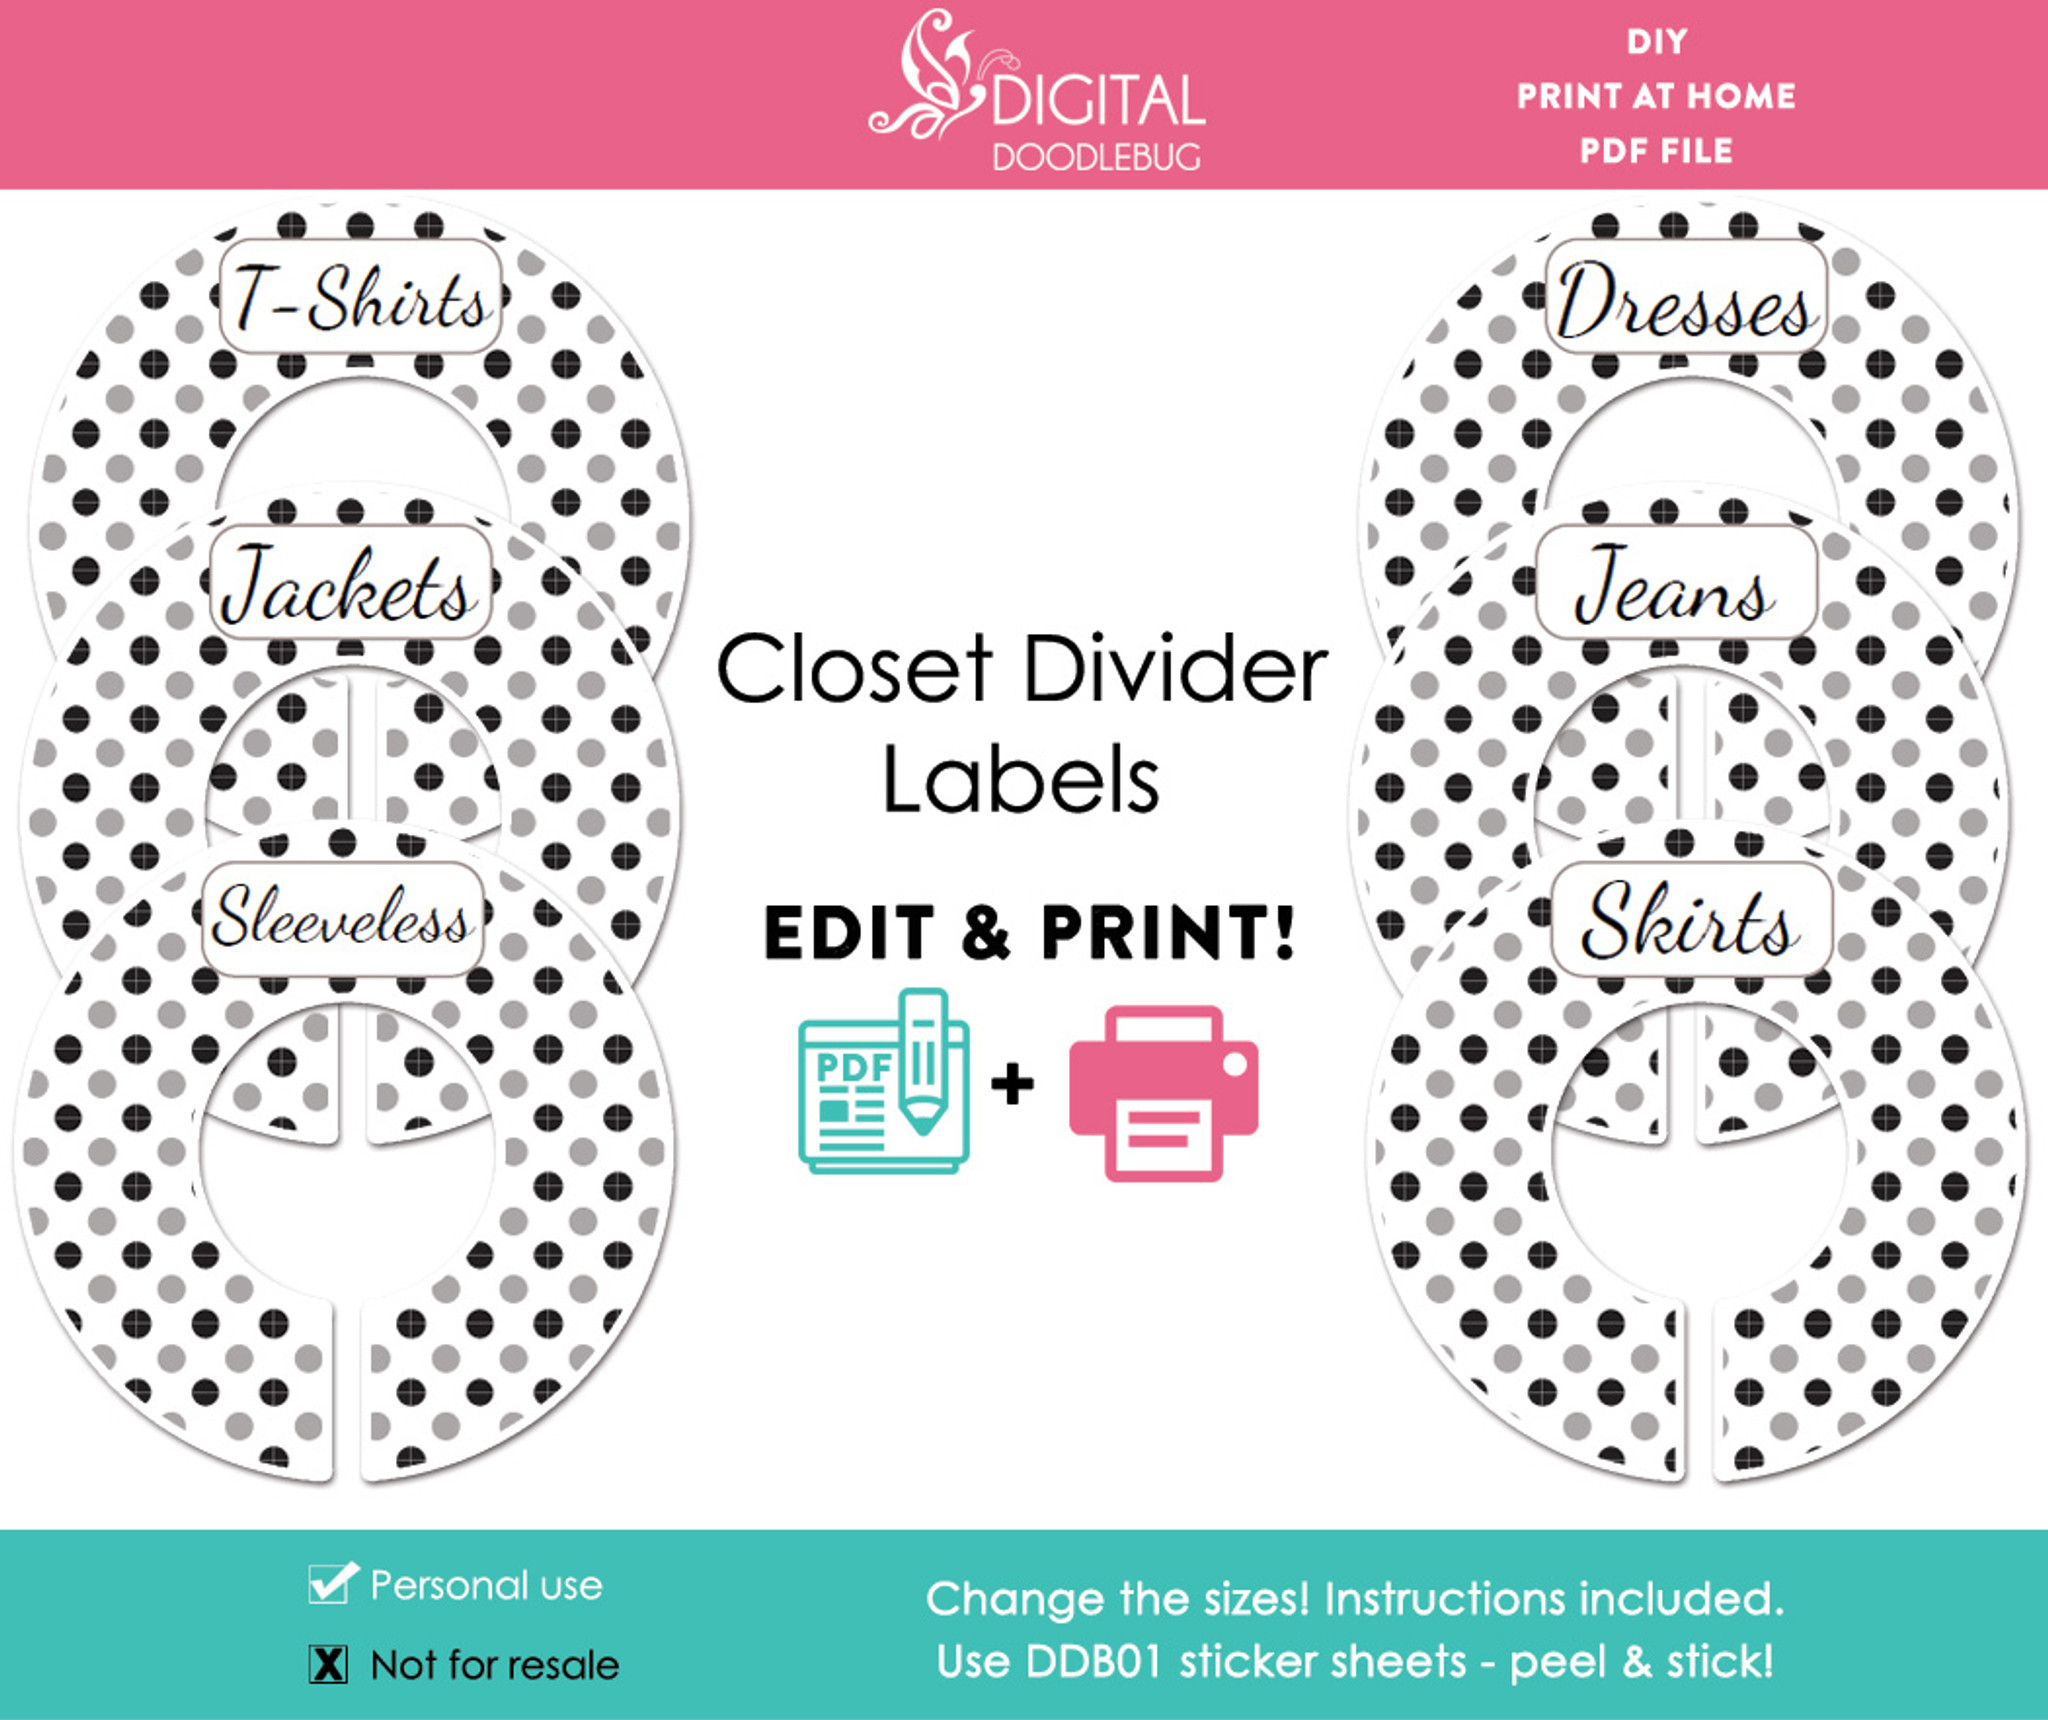 image about Printable Closet Dividers named Black Grey Polka Dot Printable Closet Divider Label Template